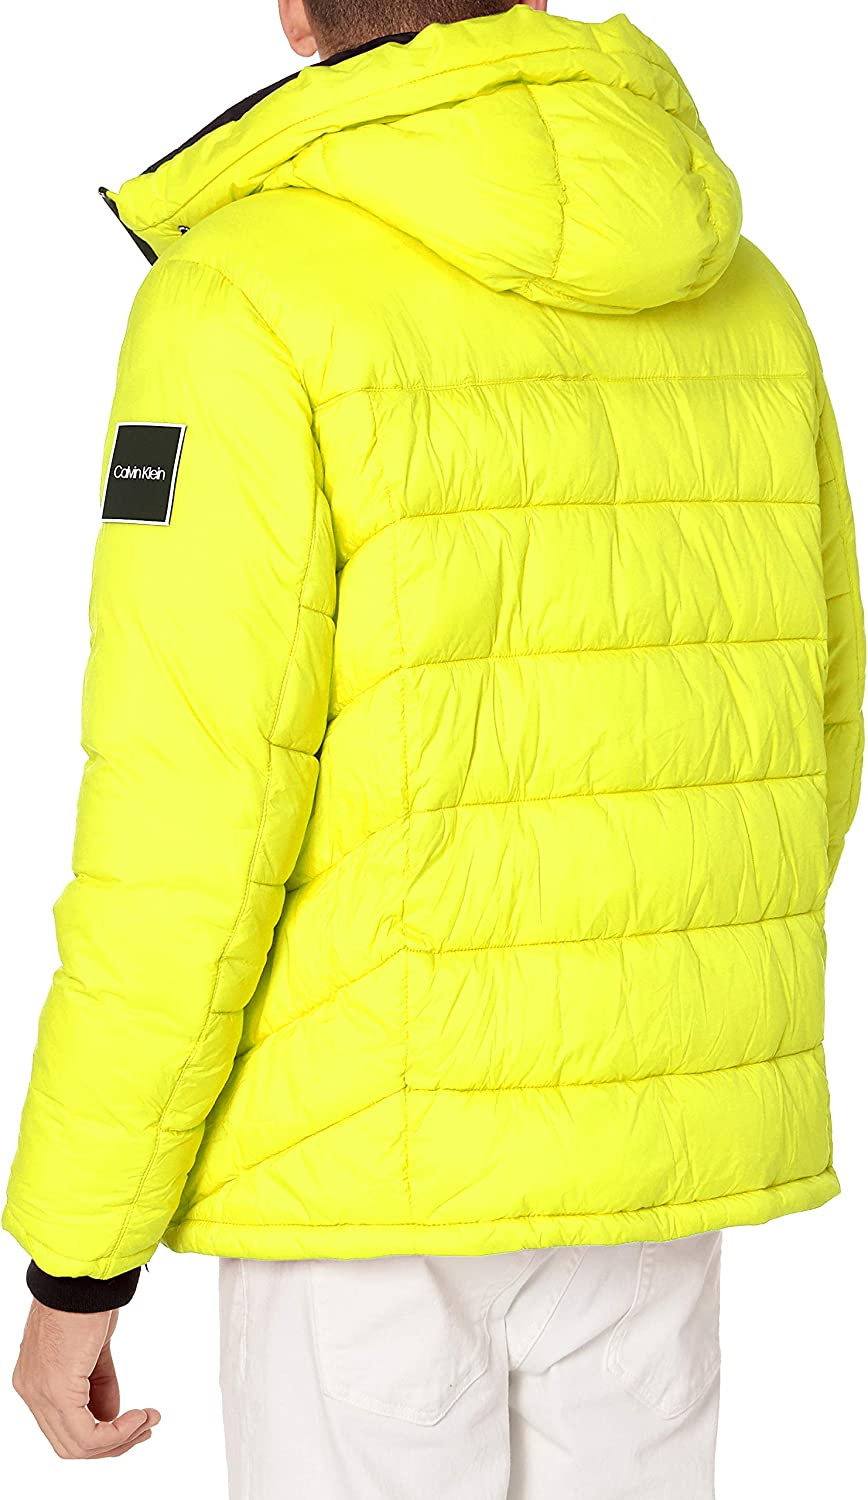 Calvin Klein Men's Slim Fit Max 57% OFF Water Puff 25% OFF Hooded and Resistant Wind